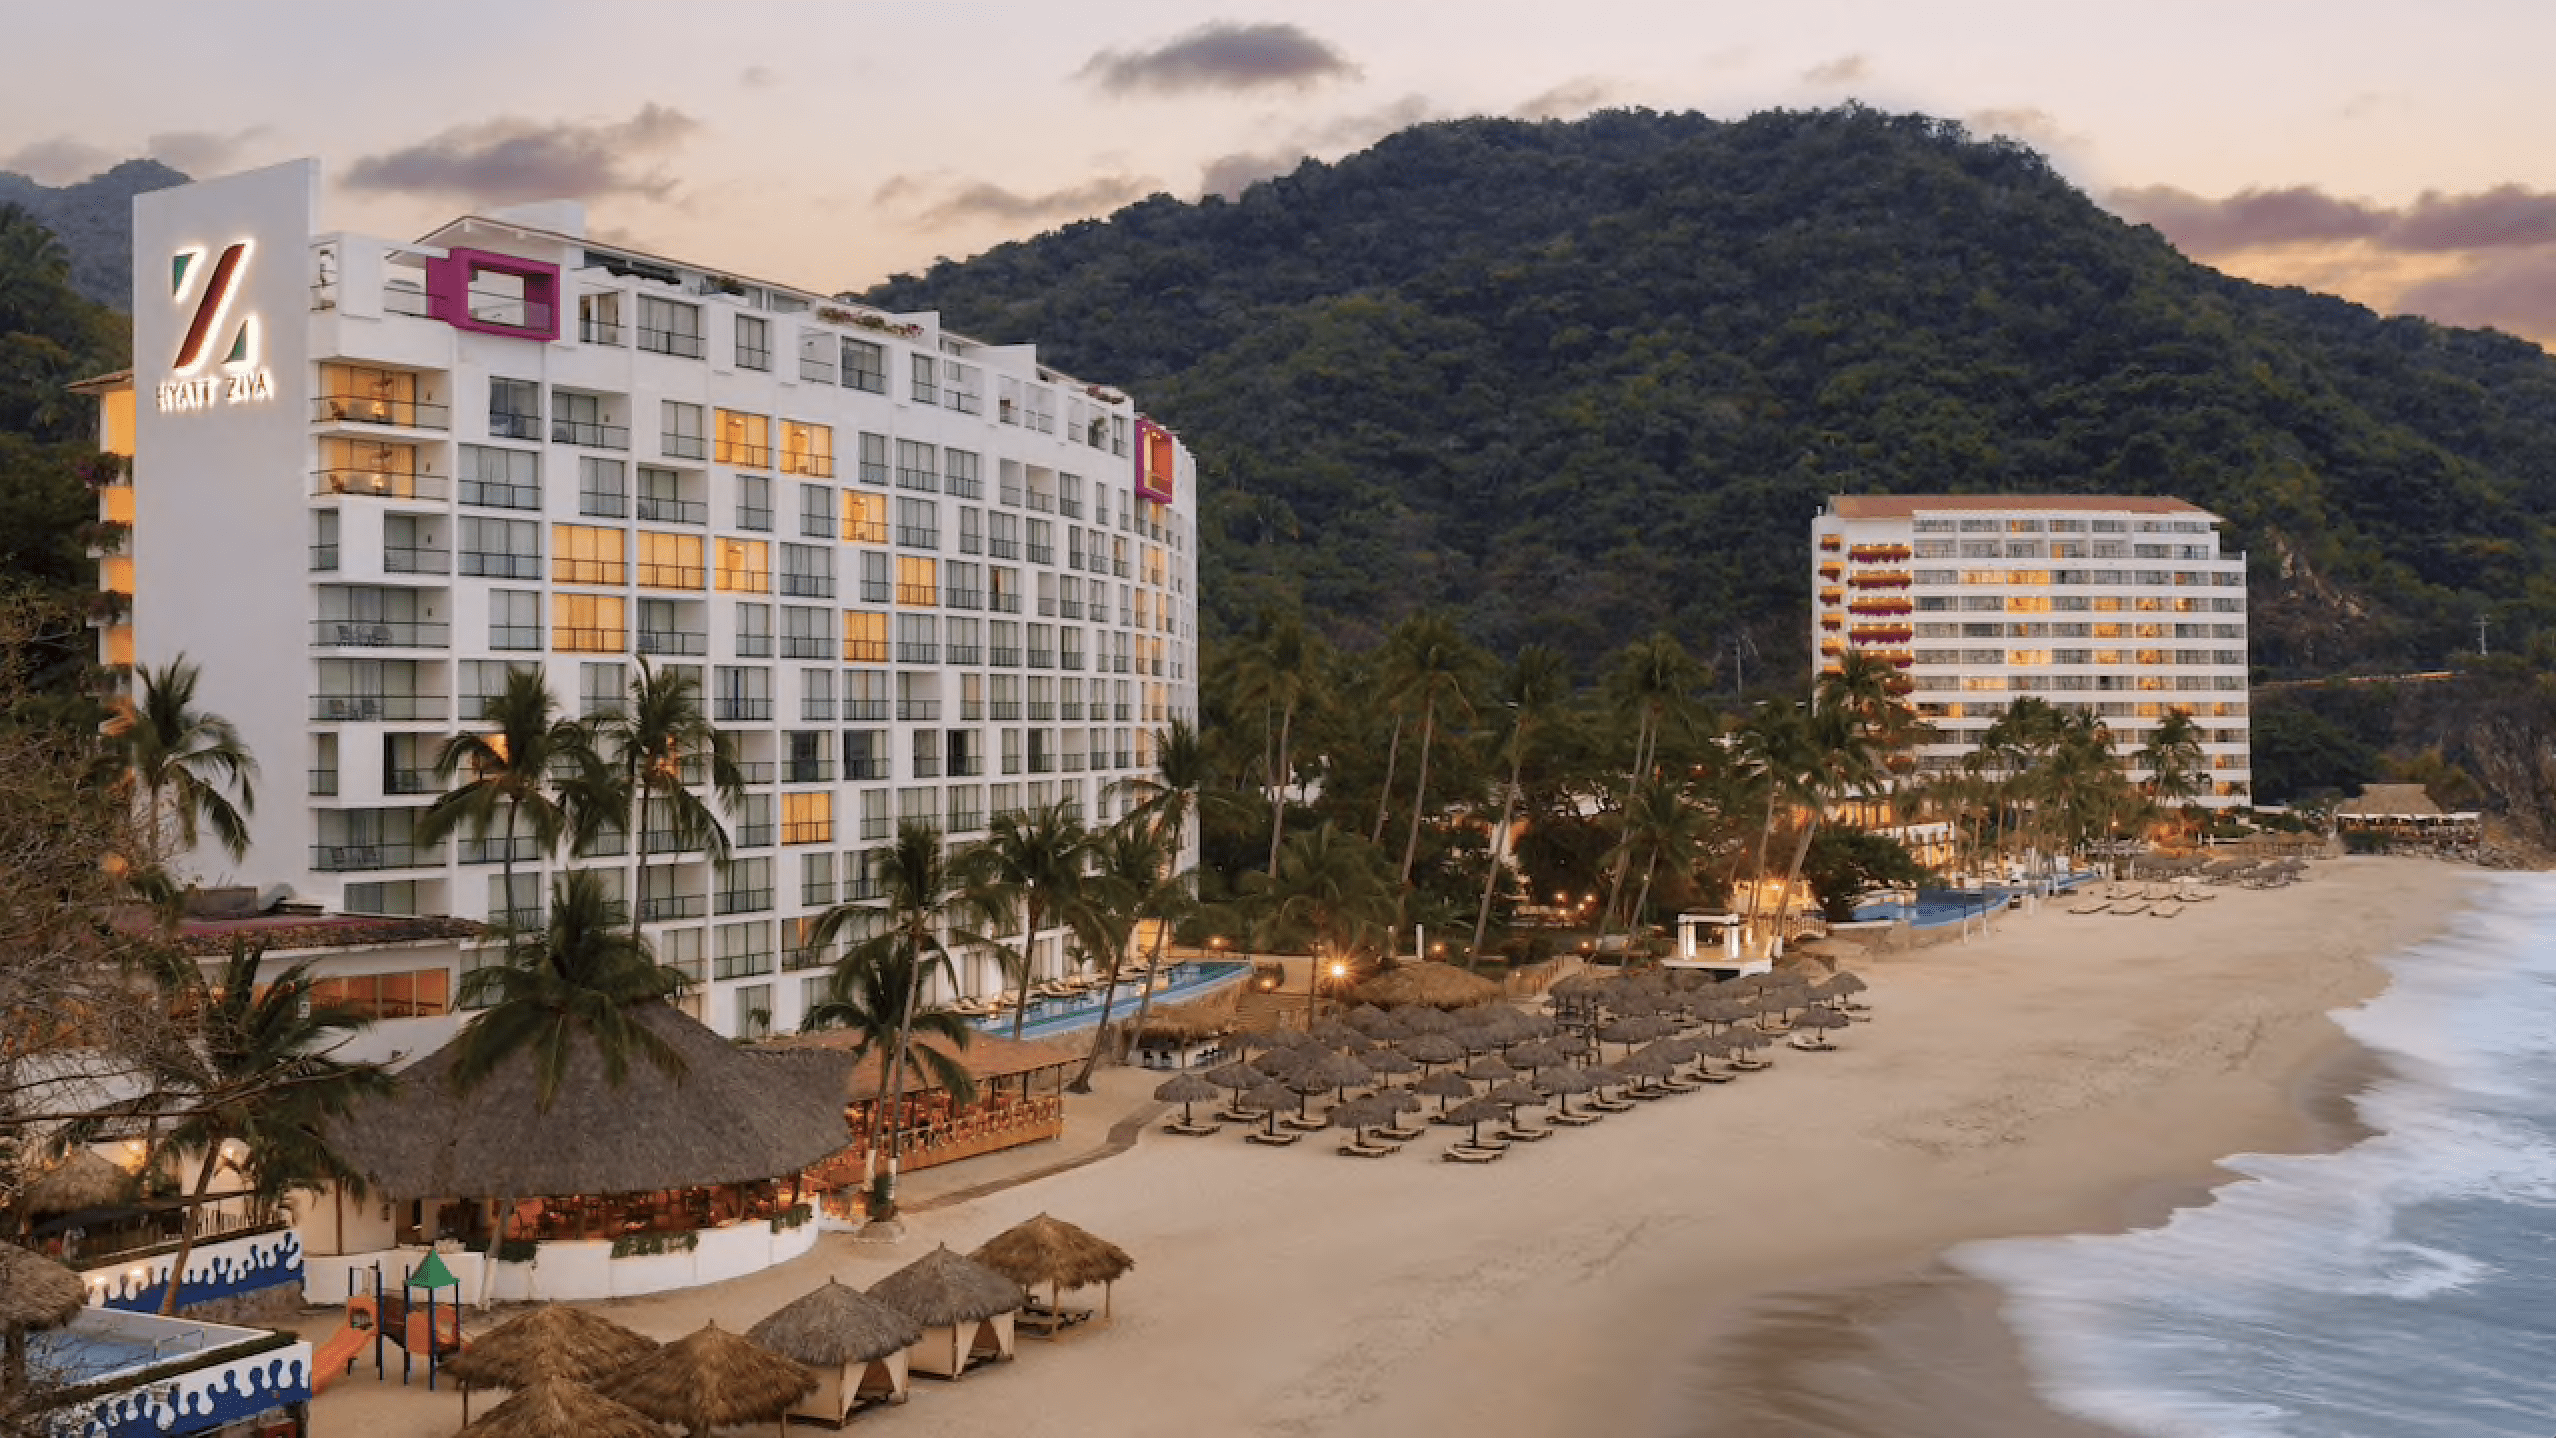 Hyatt Ziva Puerto Vallarta - Don't transfer points: It may be better to book an all-inclusive resort through your credit card portal